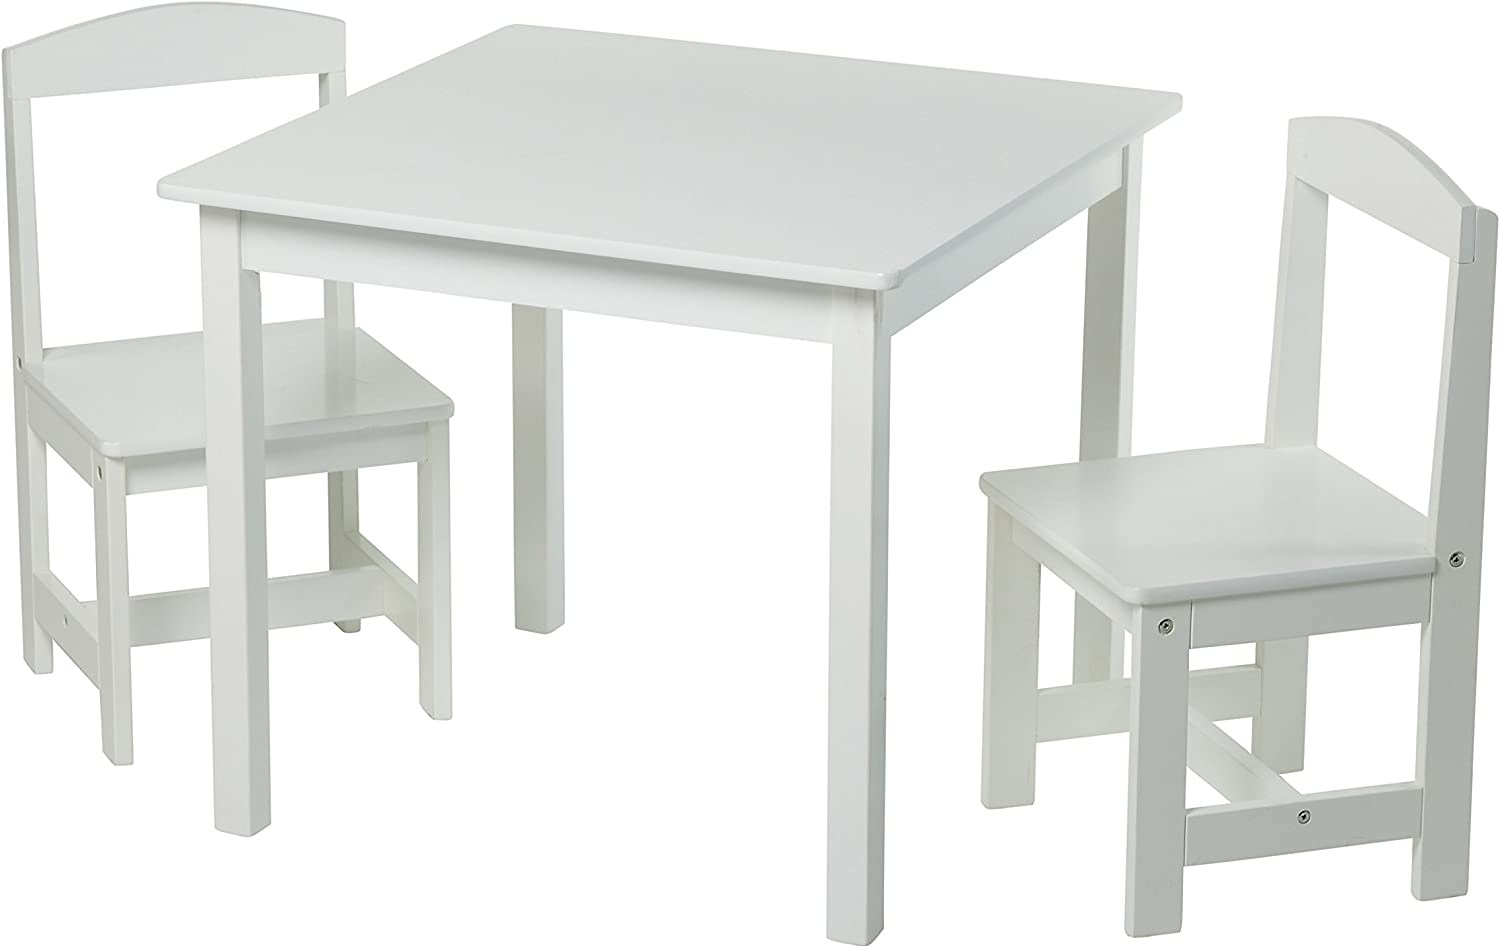 Target Marketing Systems Hayden 35 Pc Kids Table And Chairs, White